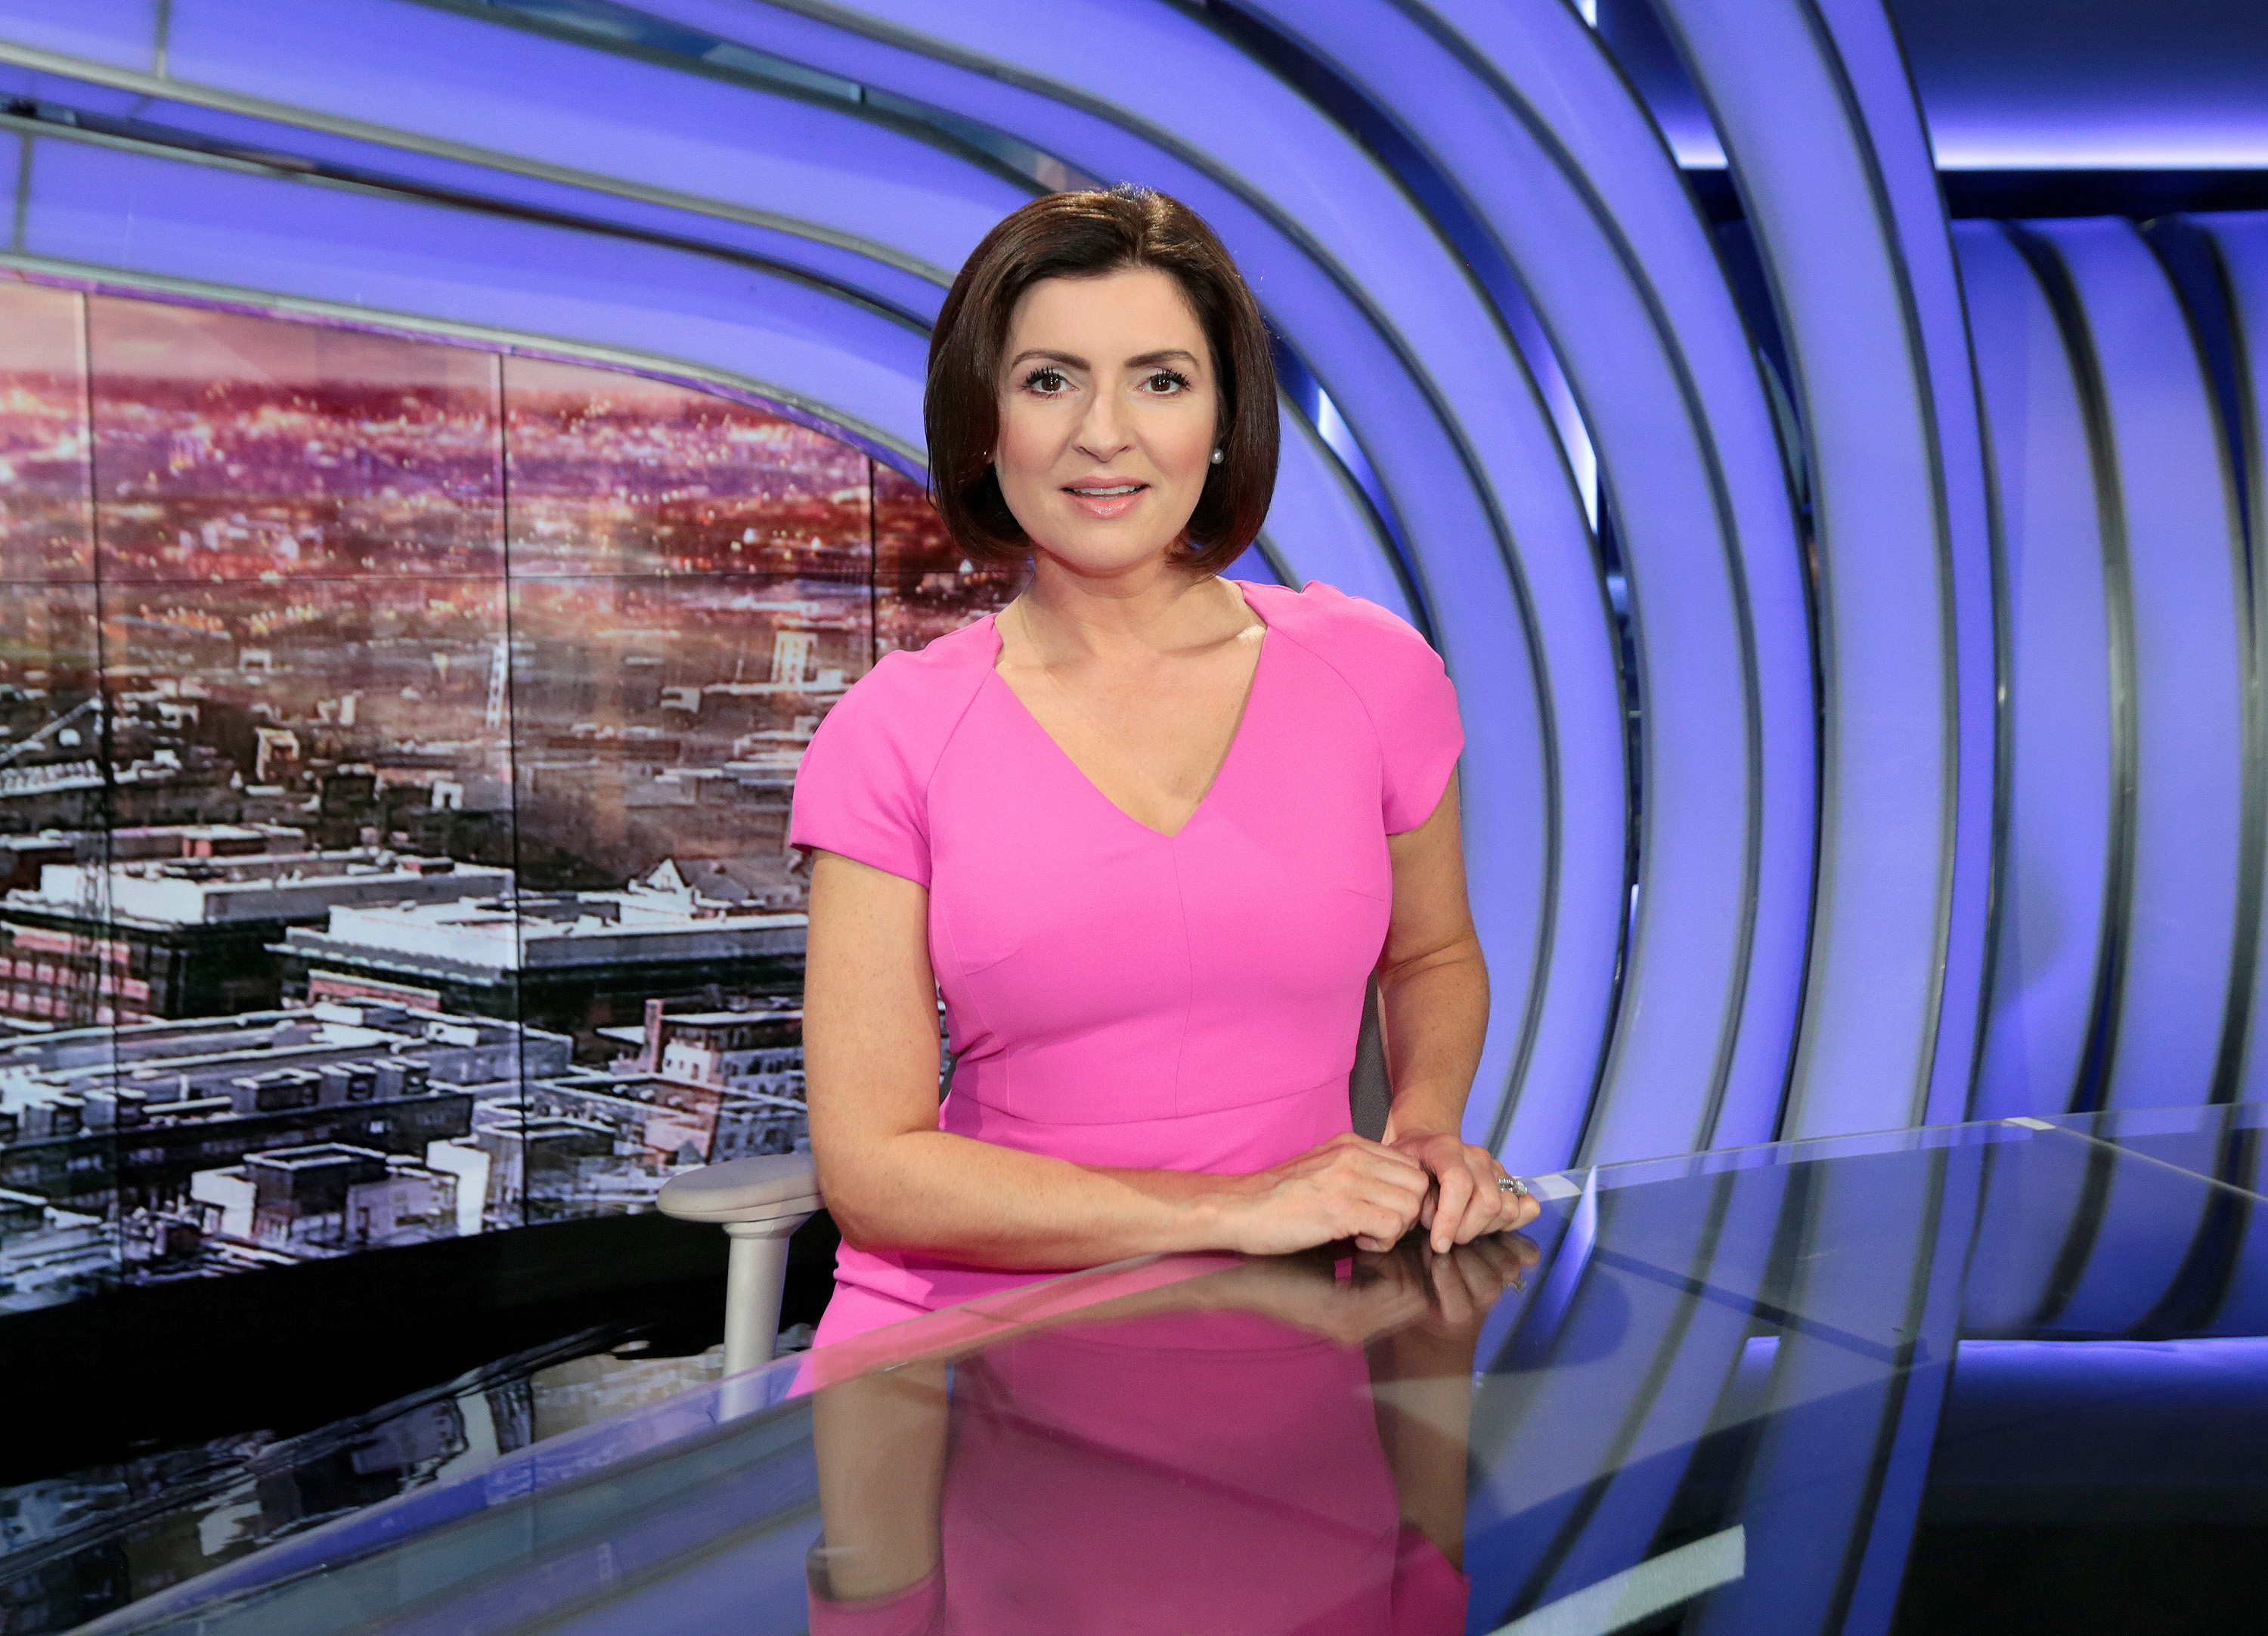 ncs_tv3-news-ireland-studio_0004